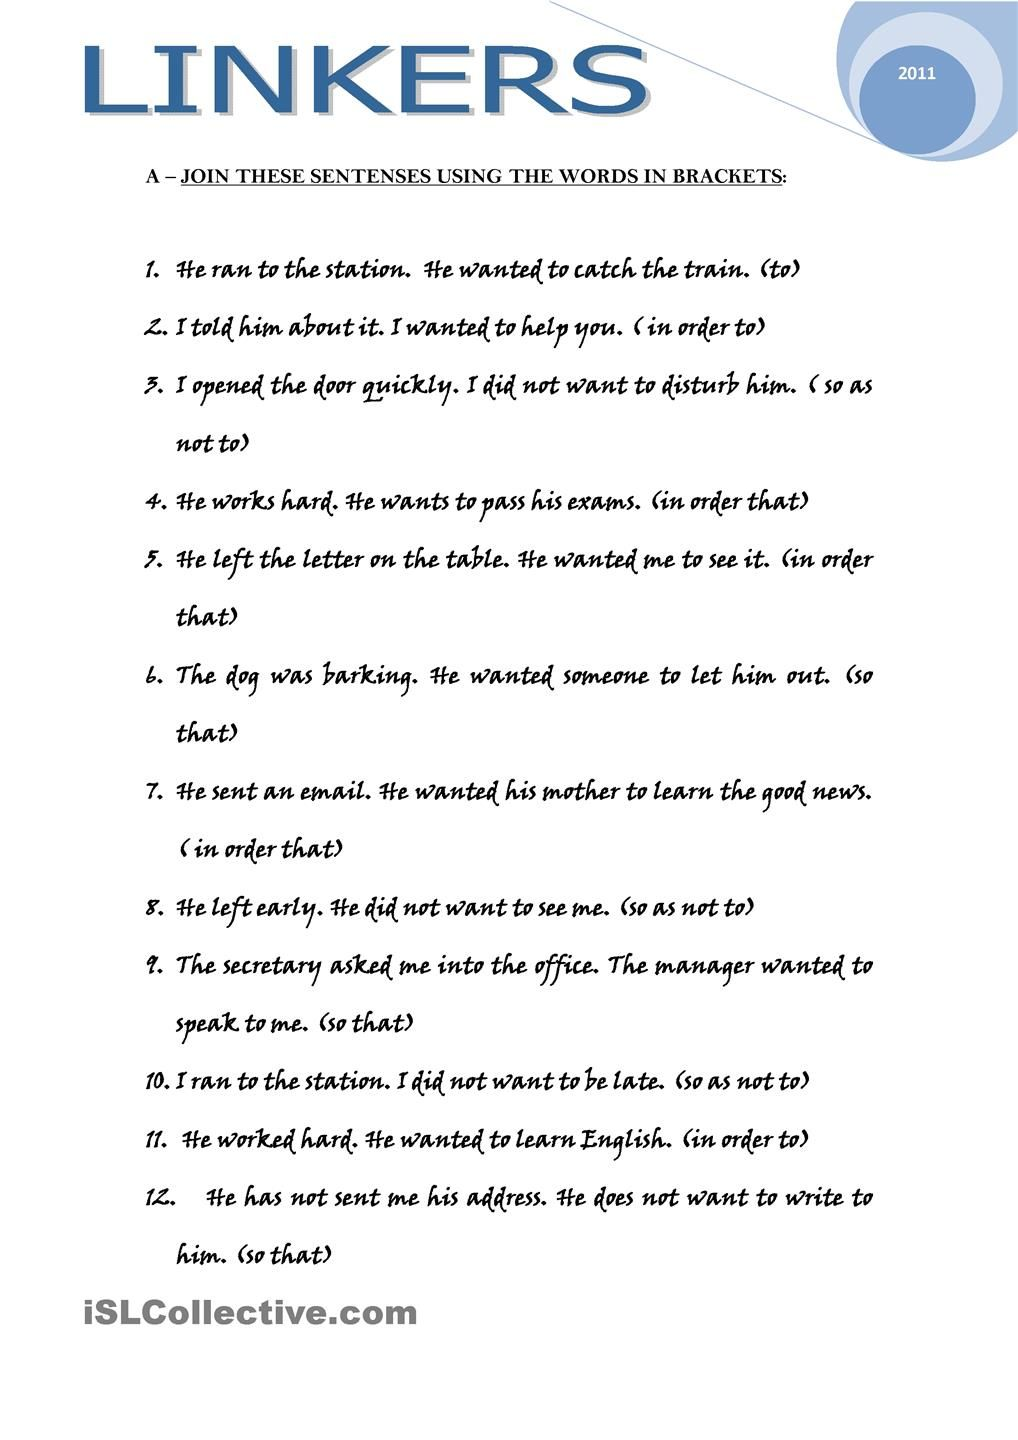 Workbooks worksheets on conjunctions for grade 8 : LINKERS | Conjunctions | Pinterest | Grammar lessons, Teaching ...